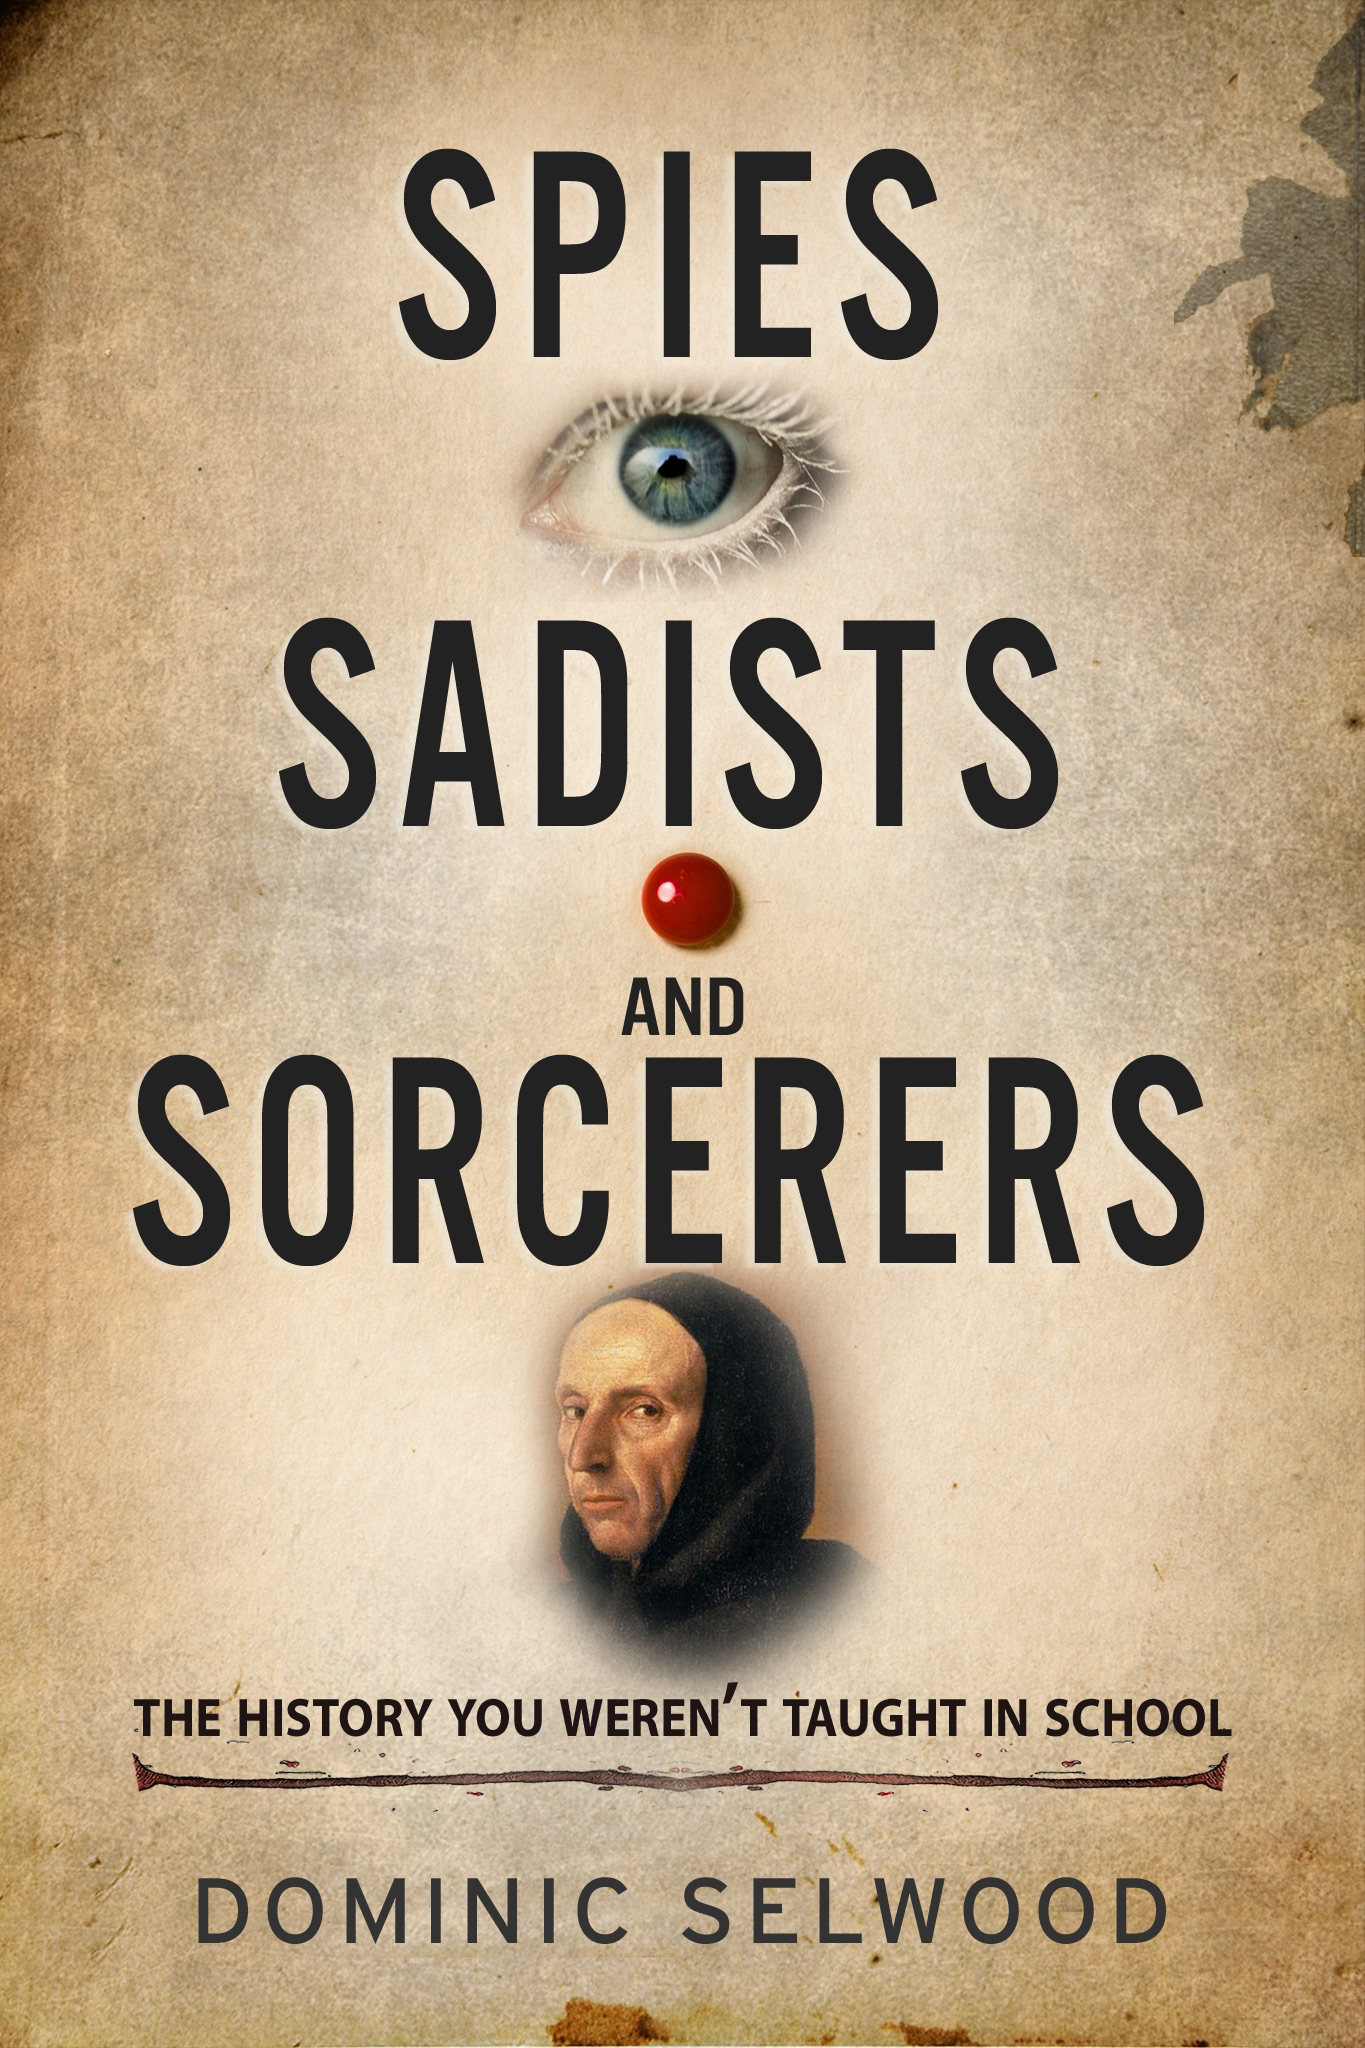 BOOK REVIEW: Spies, Sadists, and Sorcerers: The History You Weren't Taught in School